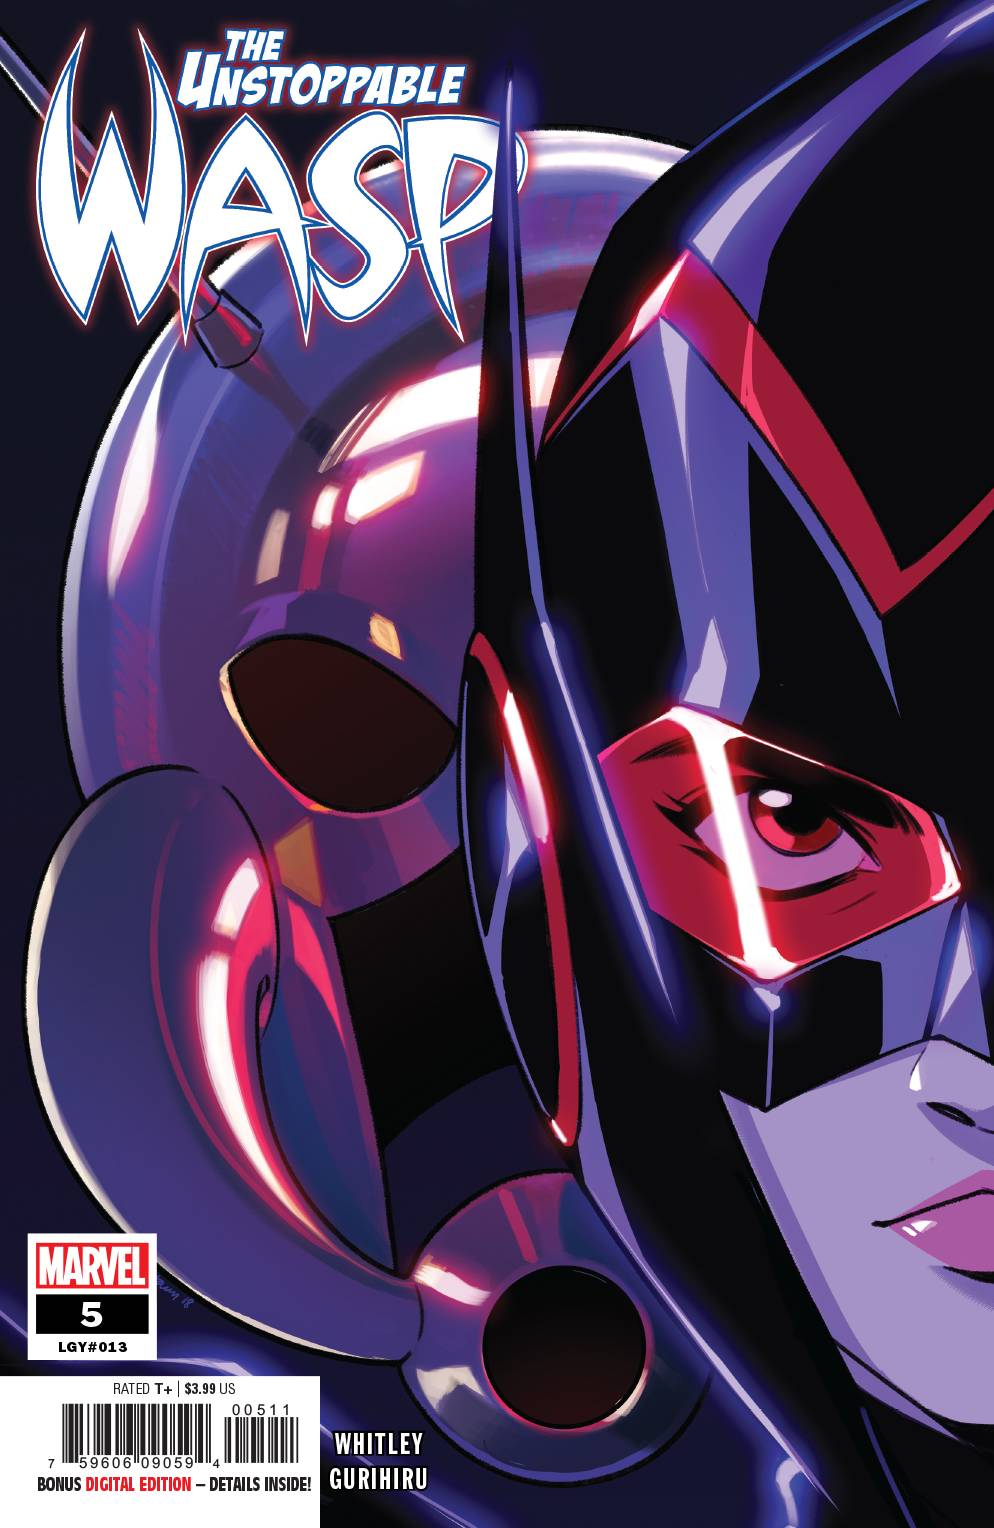 UNSTOPPABLE WASP 5.jpg